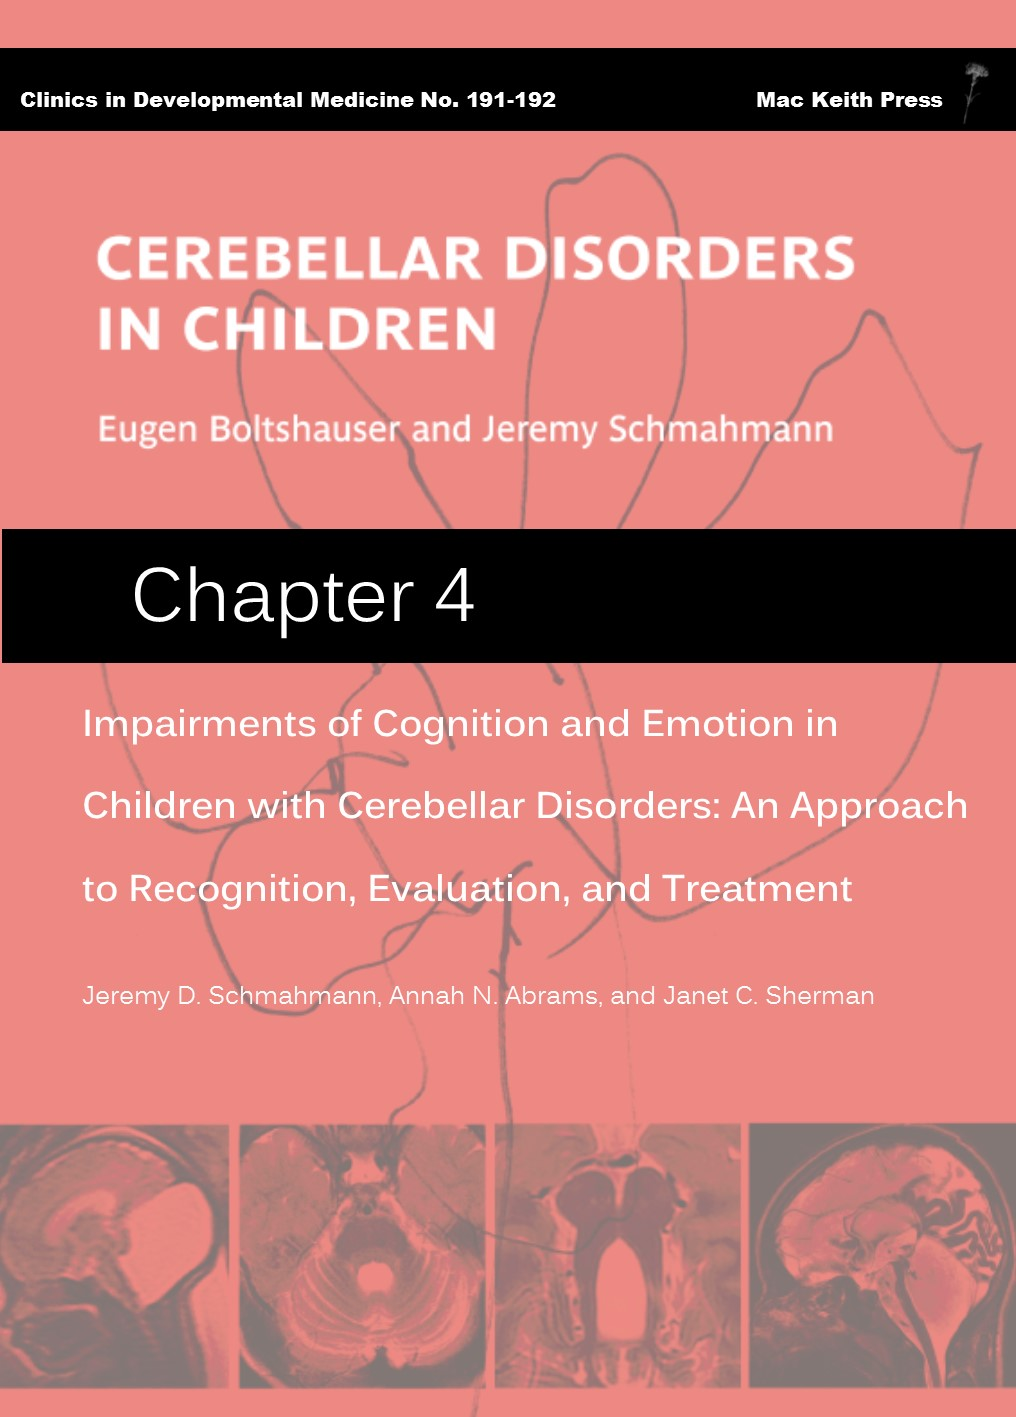 Impairments of Cognition and Emotion in Children with Cerebellar Disorders: An Approach to Recognition, Evaluation and Treatment - Cerebellar Disorders in Children (Chapter 4) COVER IMAGE